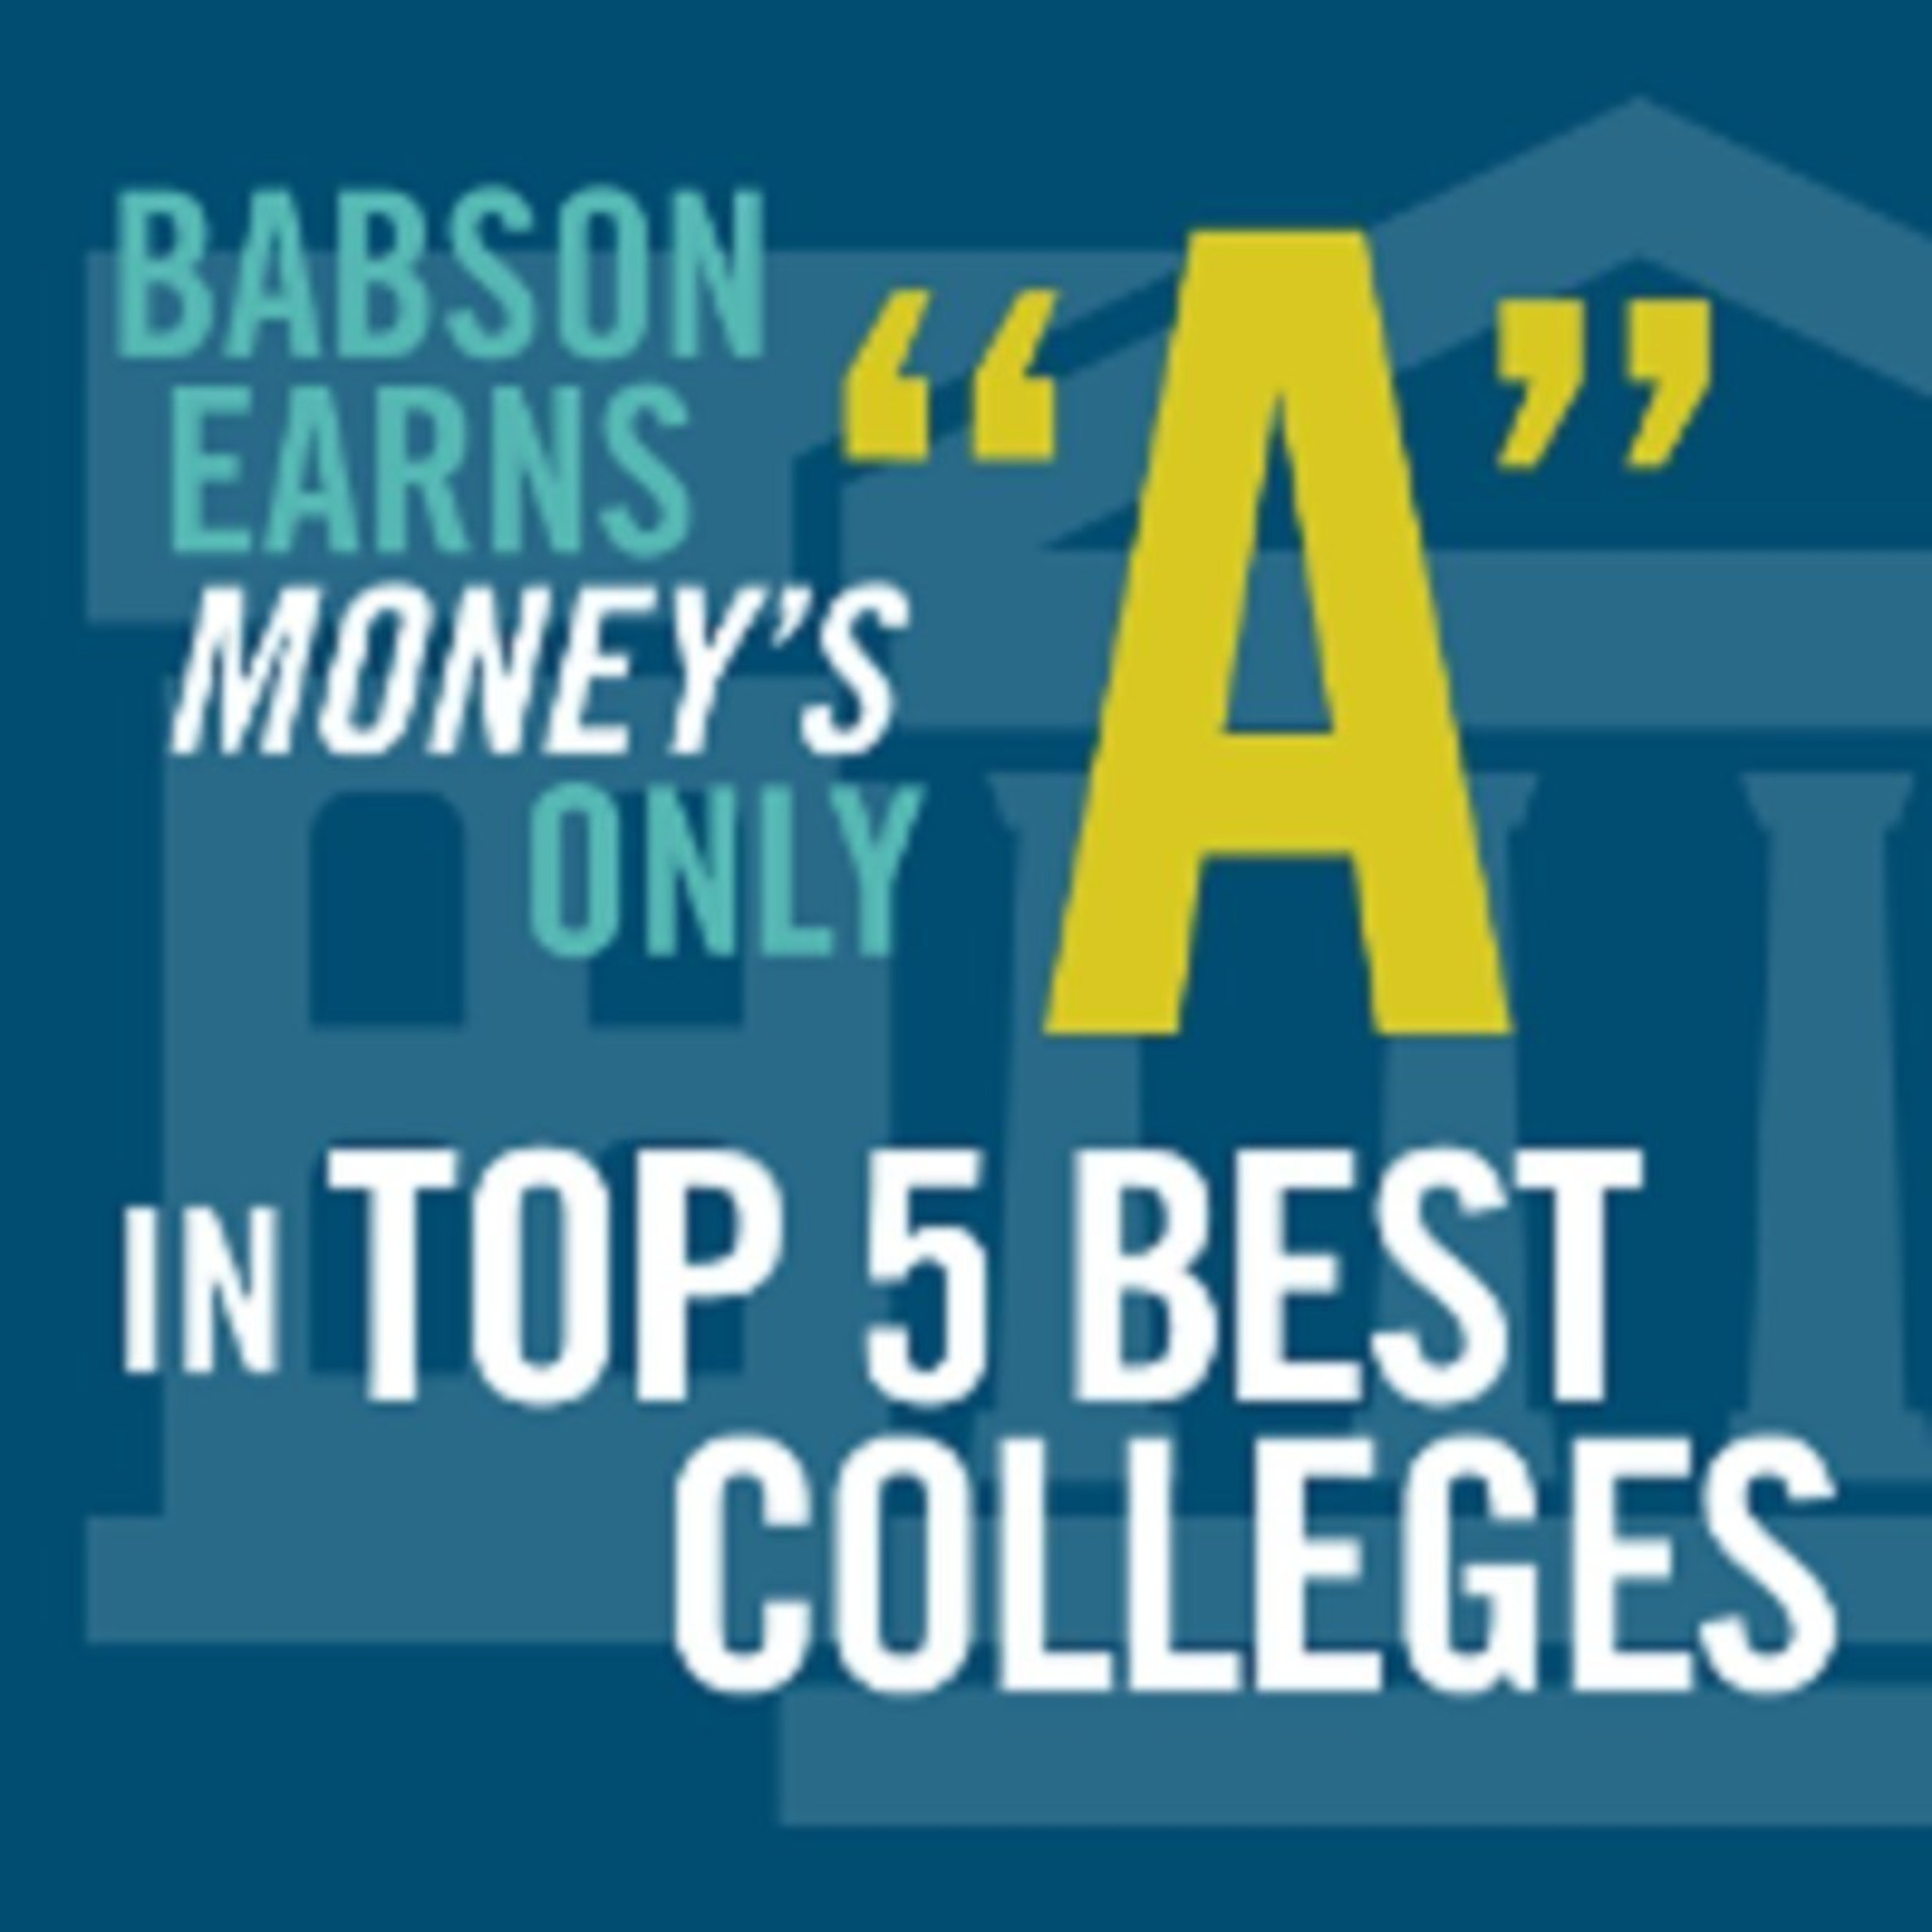 """Money magazine has named Babson the No. 2 college in America in its new Best Colleges ranking of roughly 1,500 four-year colleges and universities. The ranking assesses three equally weighted categories: educational quality, affordability, and alumni earnings. Babson is ranked second only to Stanford and is ranked above colleges such as MIT, Princeton, California Institute of Technology, Harvard, and Amherst. Money also awarded Babson a Value-Added Grade of """"A"""" due in part to the College's high graduation rate and average alumni early career earnings."""